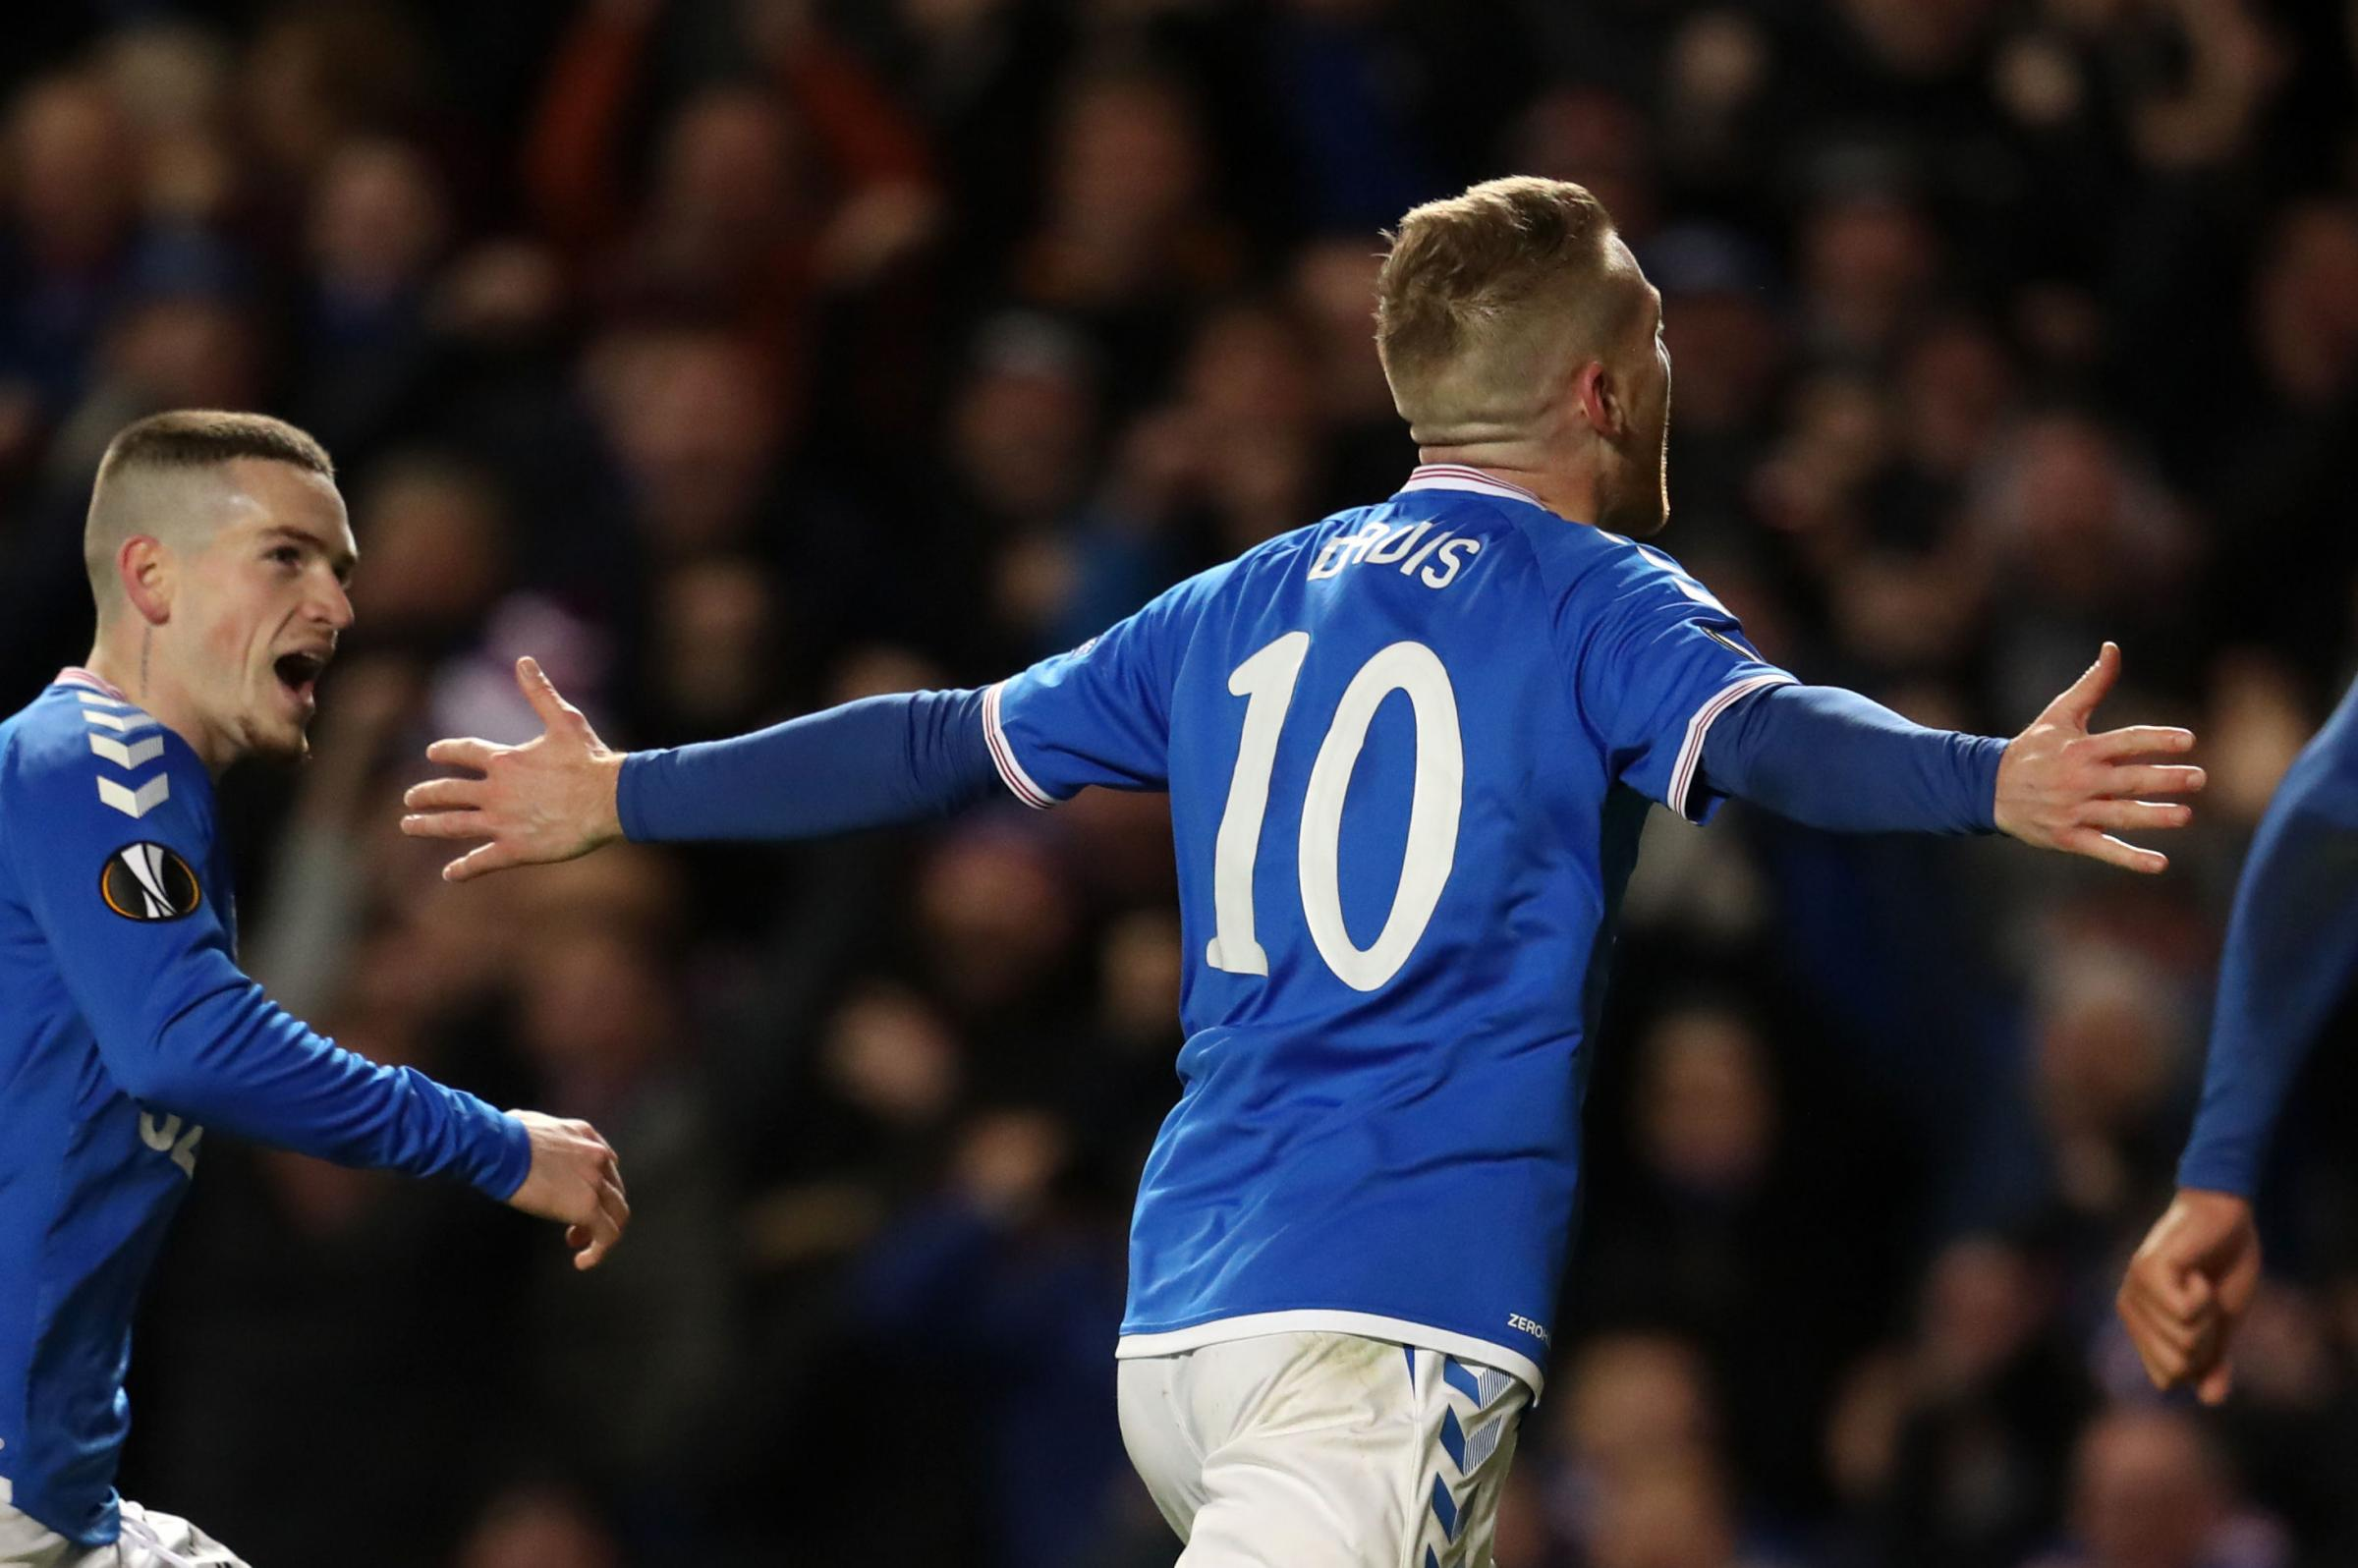 Steven Davis confident Rangers are on the right track after penning new Ibrox deal